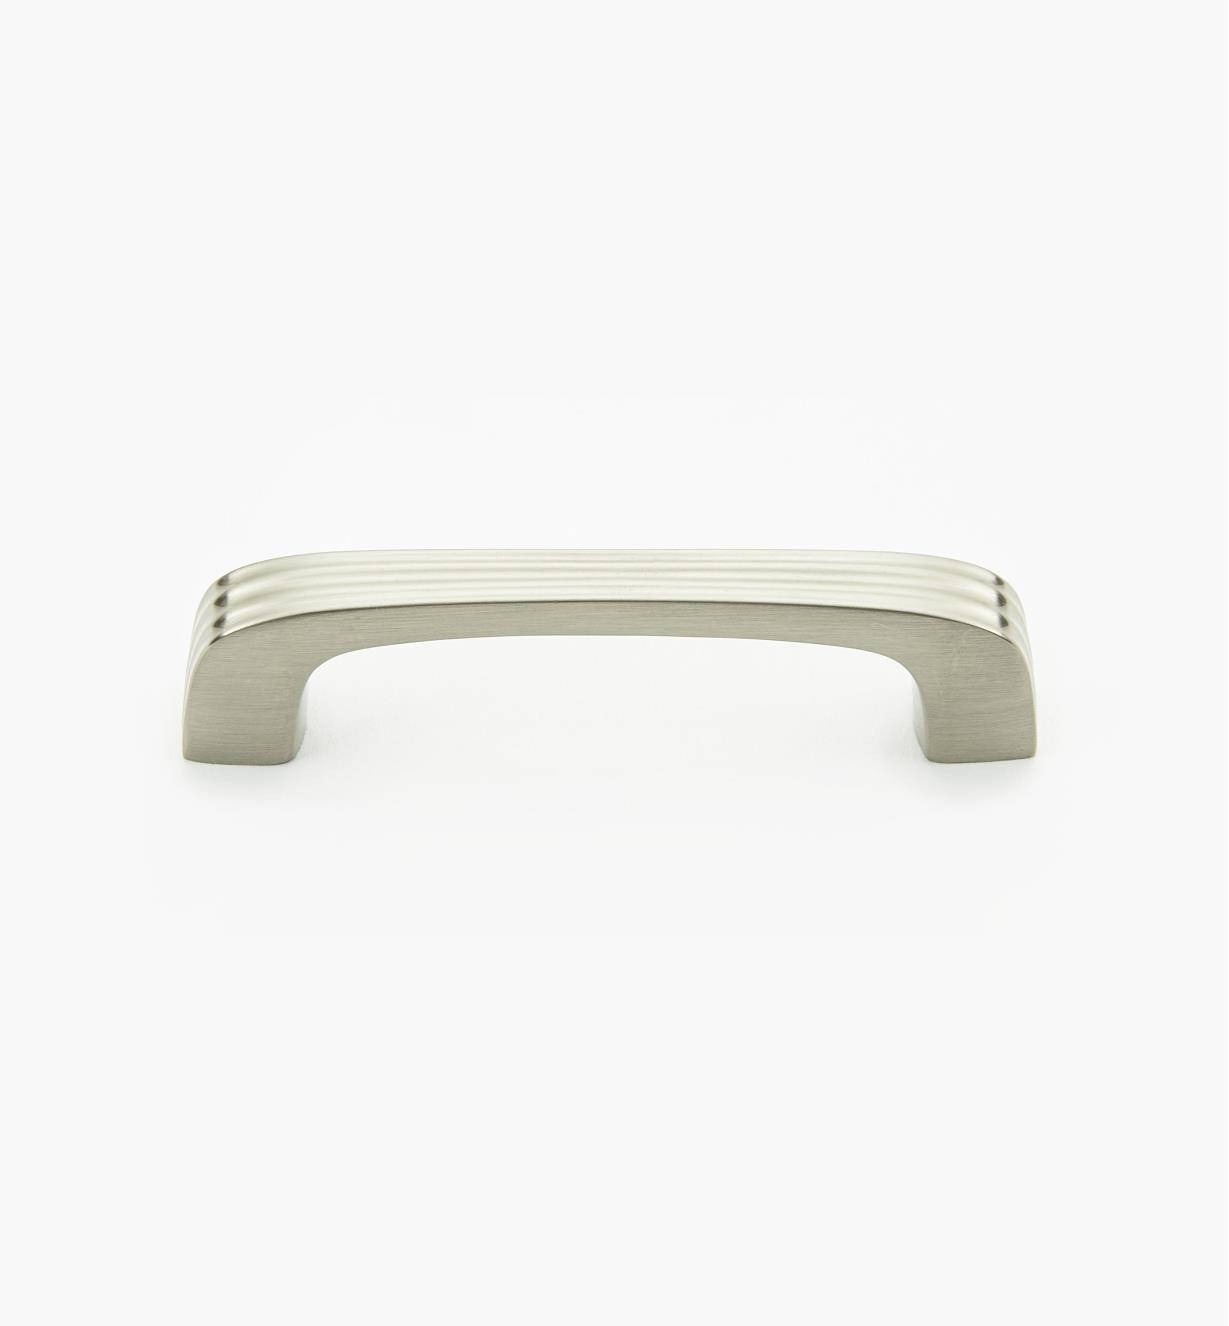 02A1391 - Satin Chrome Small Handle